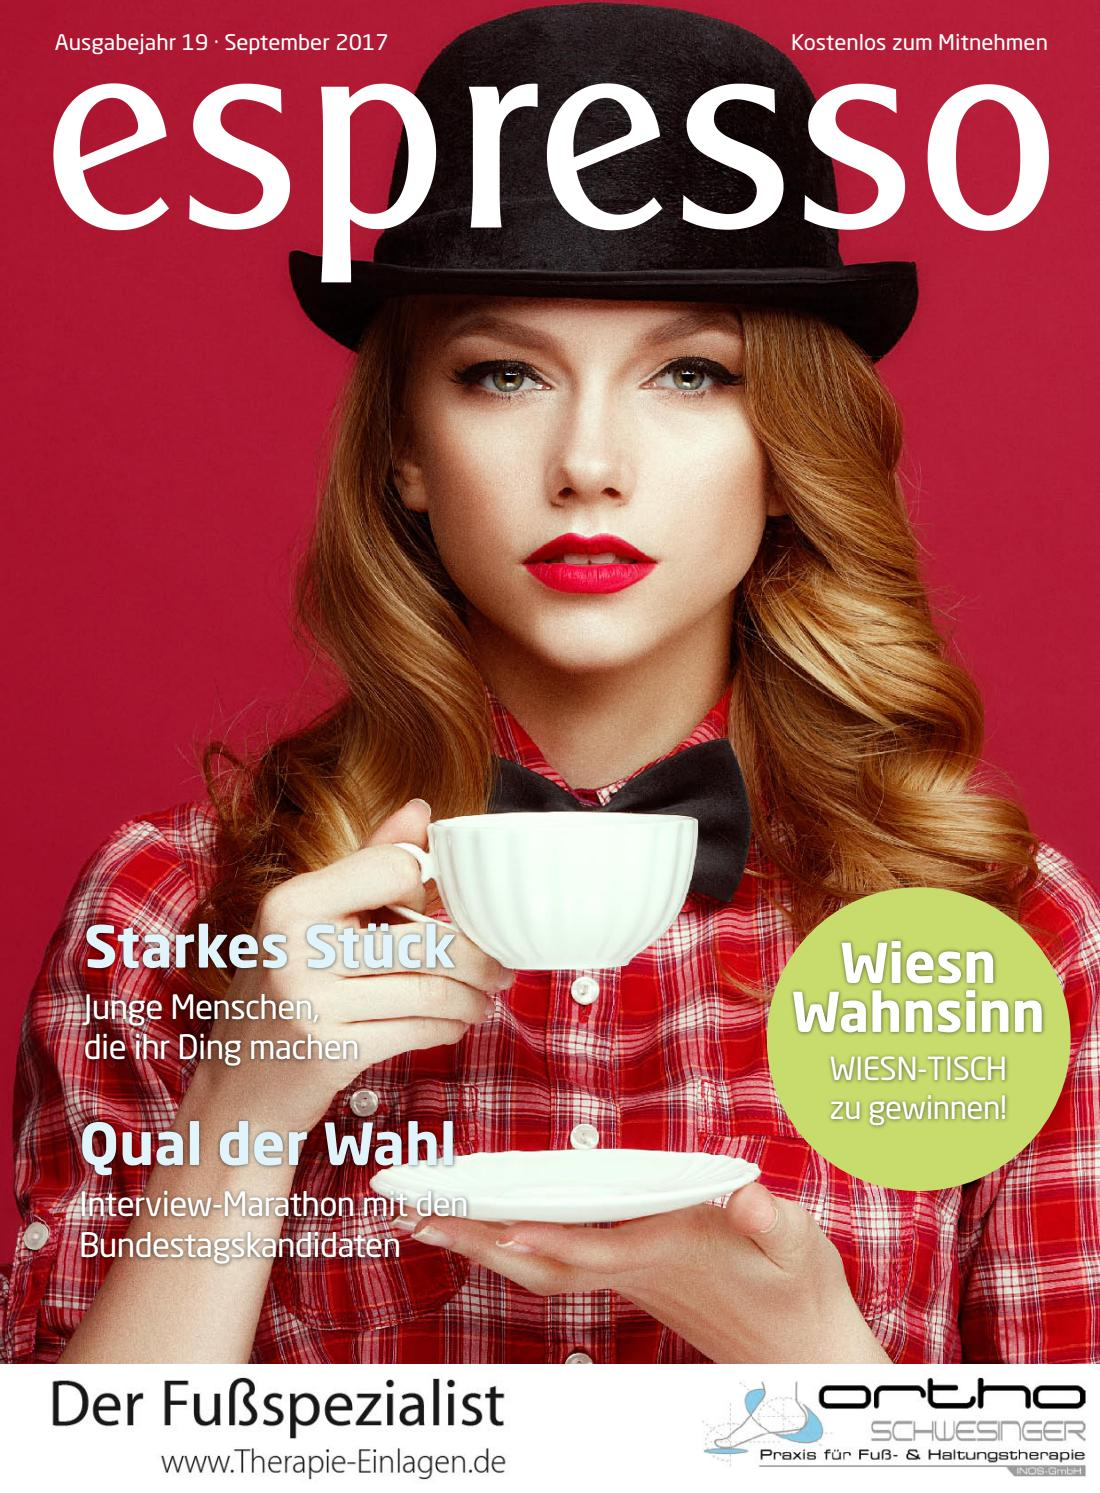 Espresso Magazin September 2017 by espresso Magazin - issuu